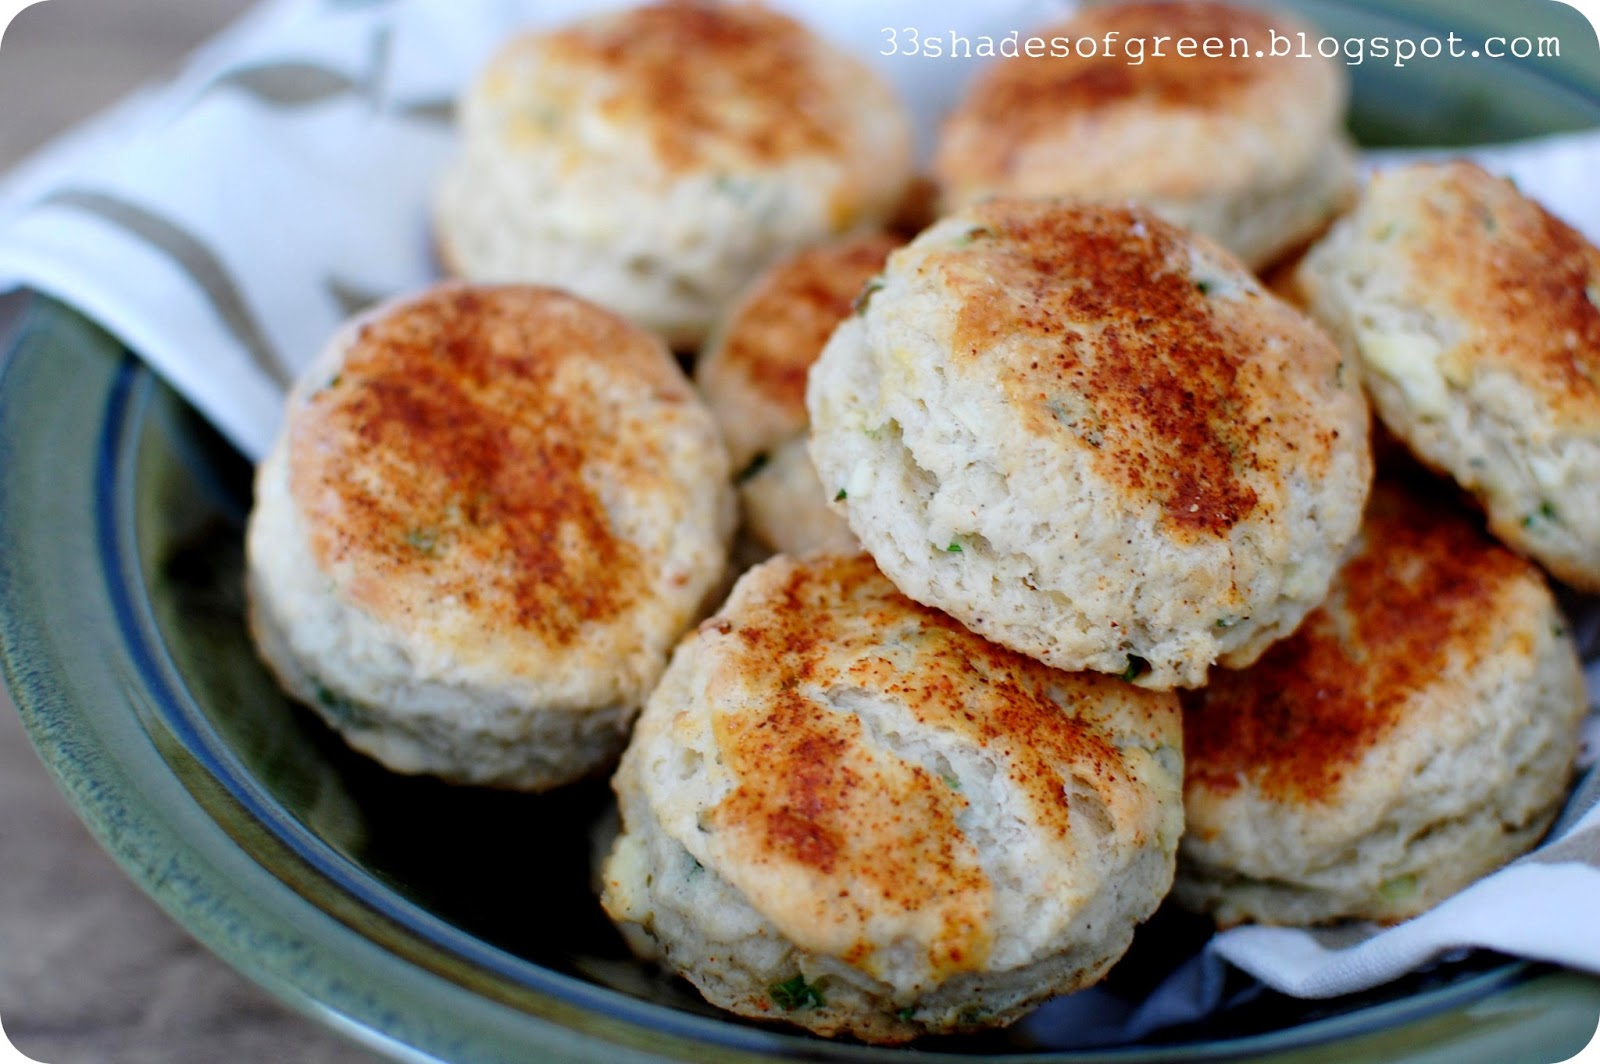 33 Shades of Green: Tasty Tuesdays: Feta, Chive, & Sour Cream Biscuits